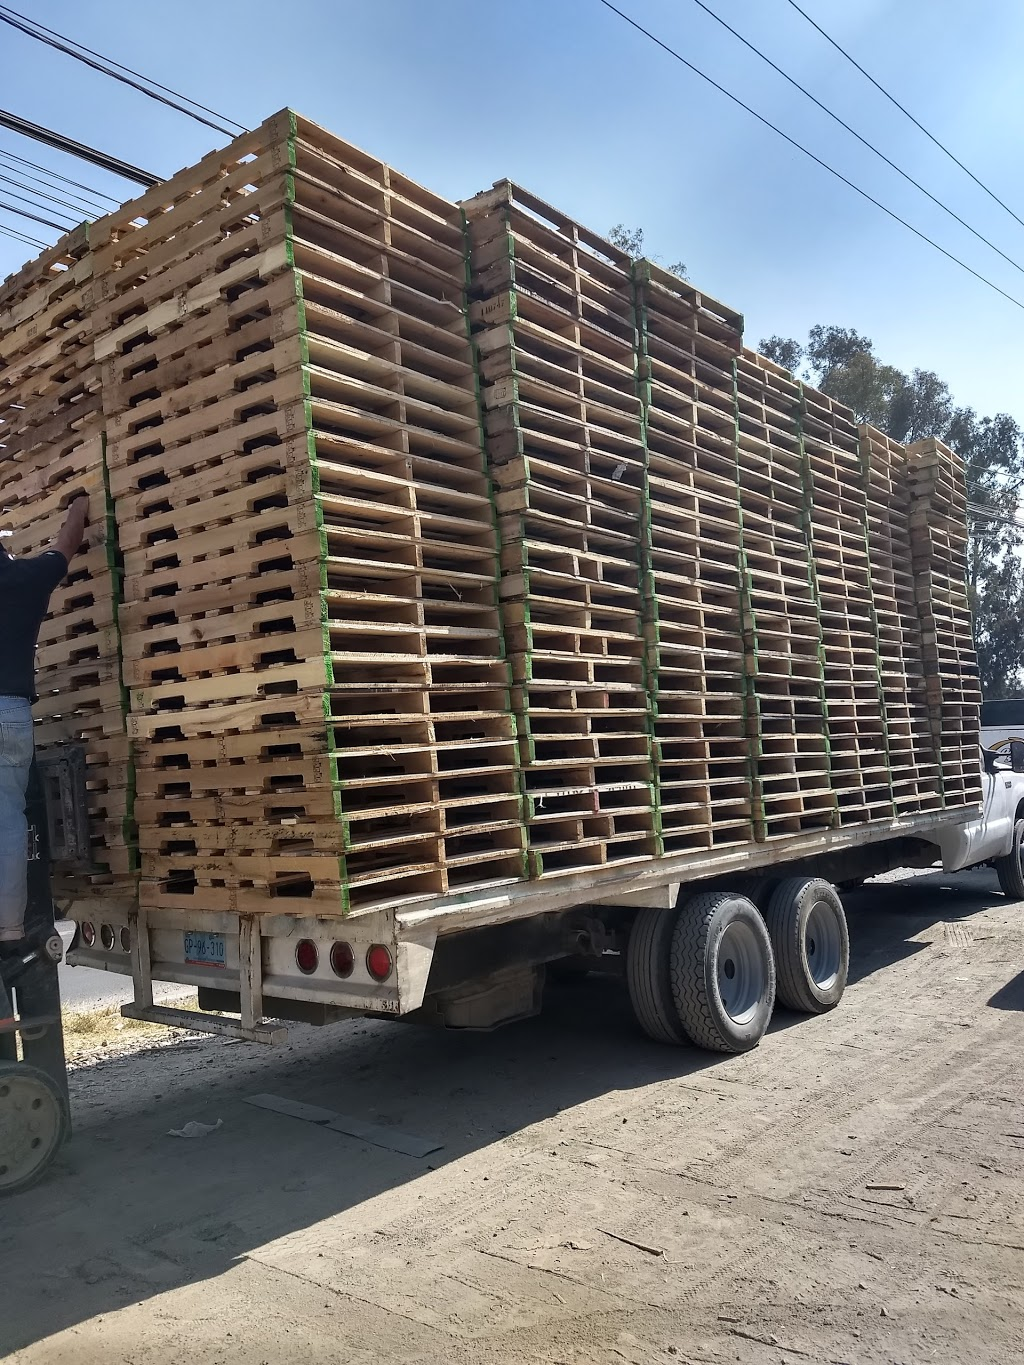 D & G Pallet Services Inc - point of interest    Photo 6 of 7   Address: 4445 W 5th Ave, Chicago, IL 60624, USA   Phone: (773) 265-8470